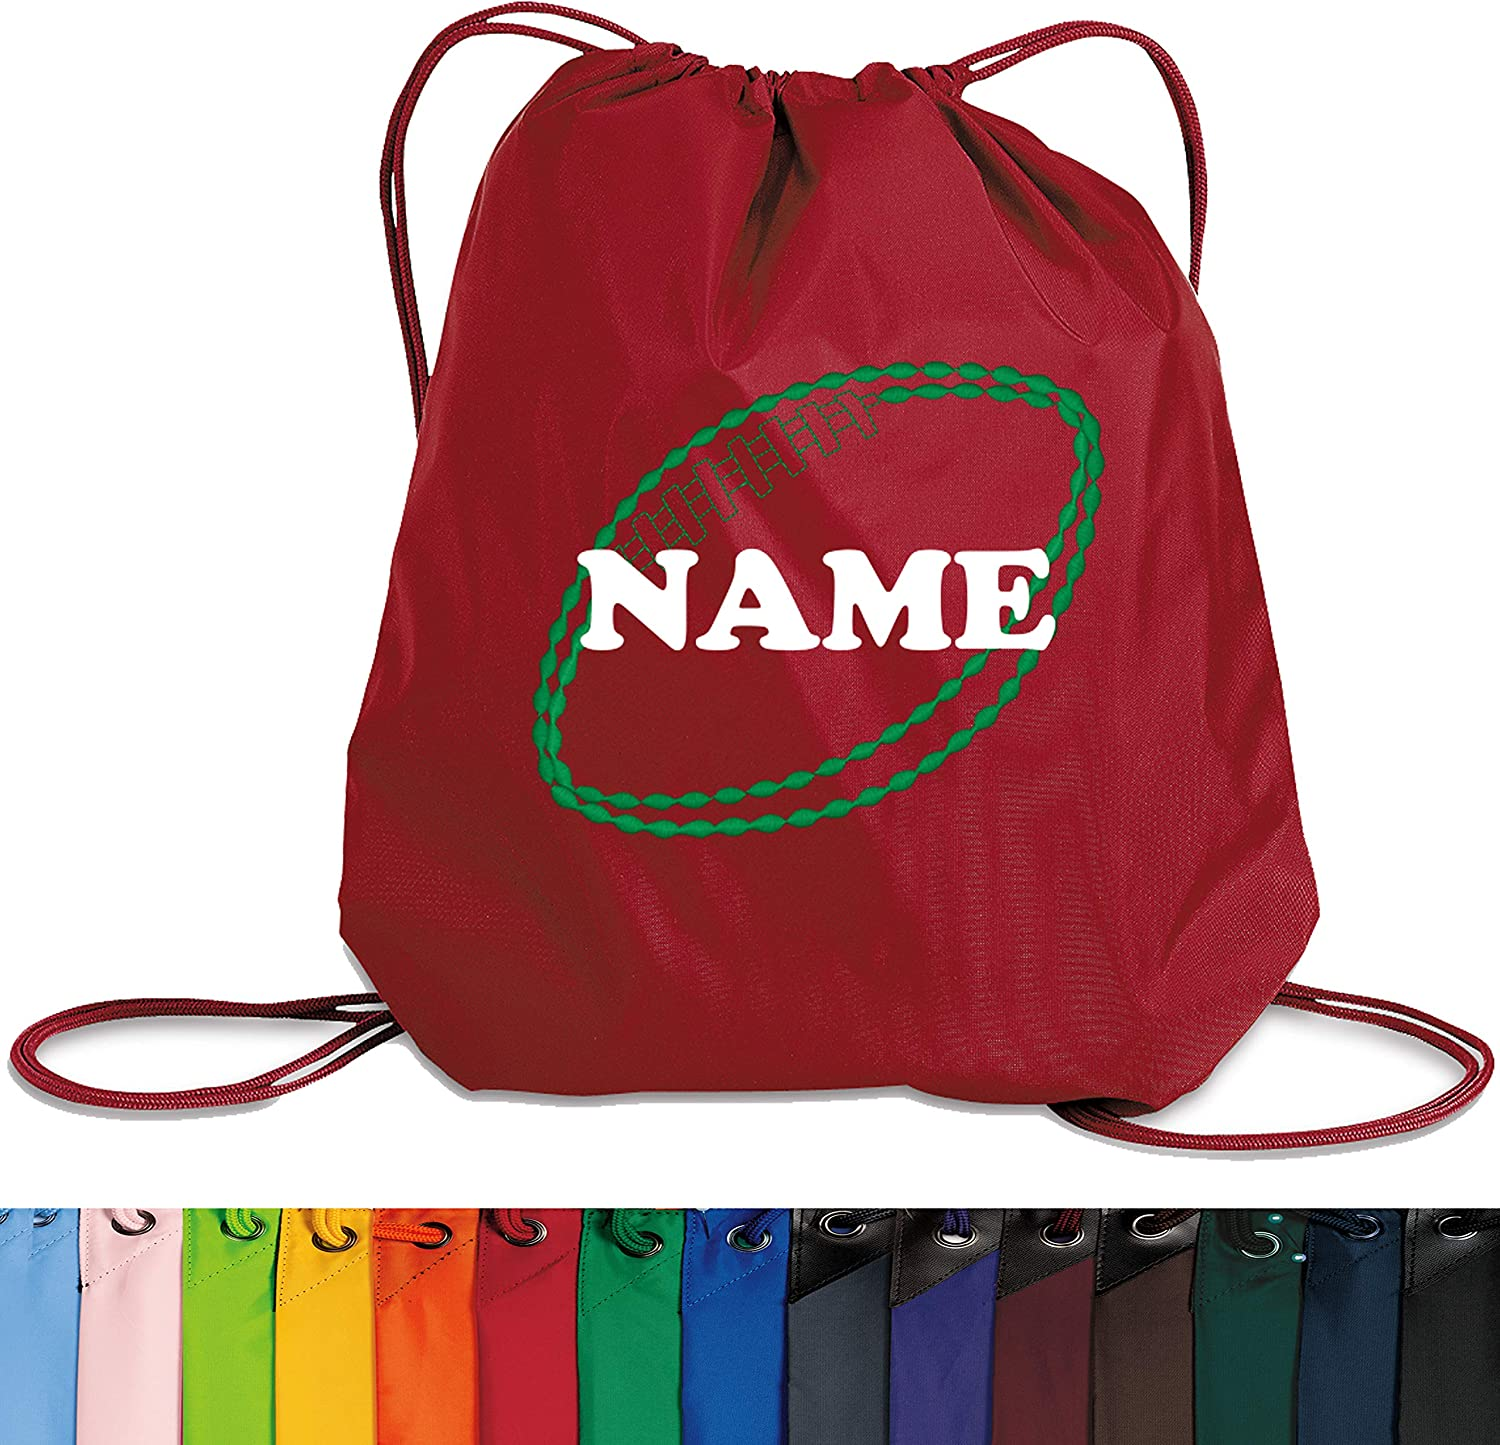 Personalized Football Cinch Backpack with Custom Text Unique Drawstring Bag with Customizable Embroidered Monogram Design